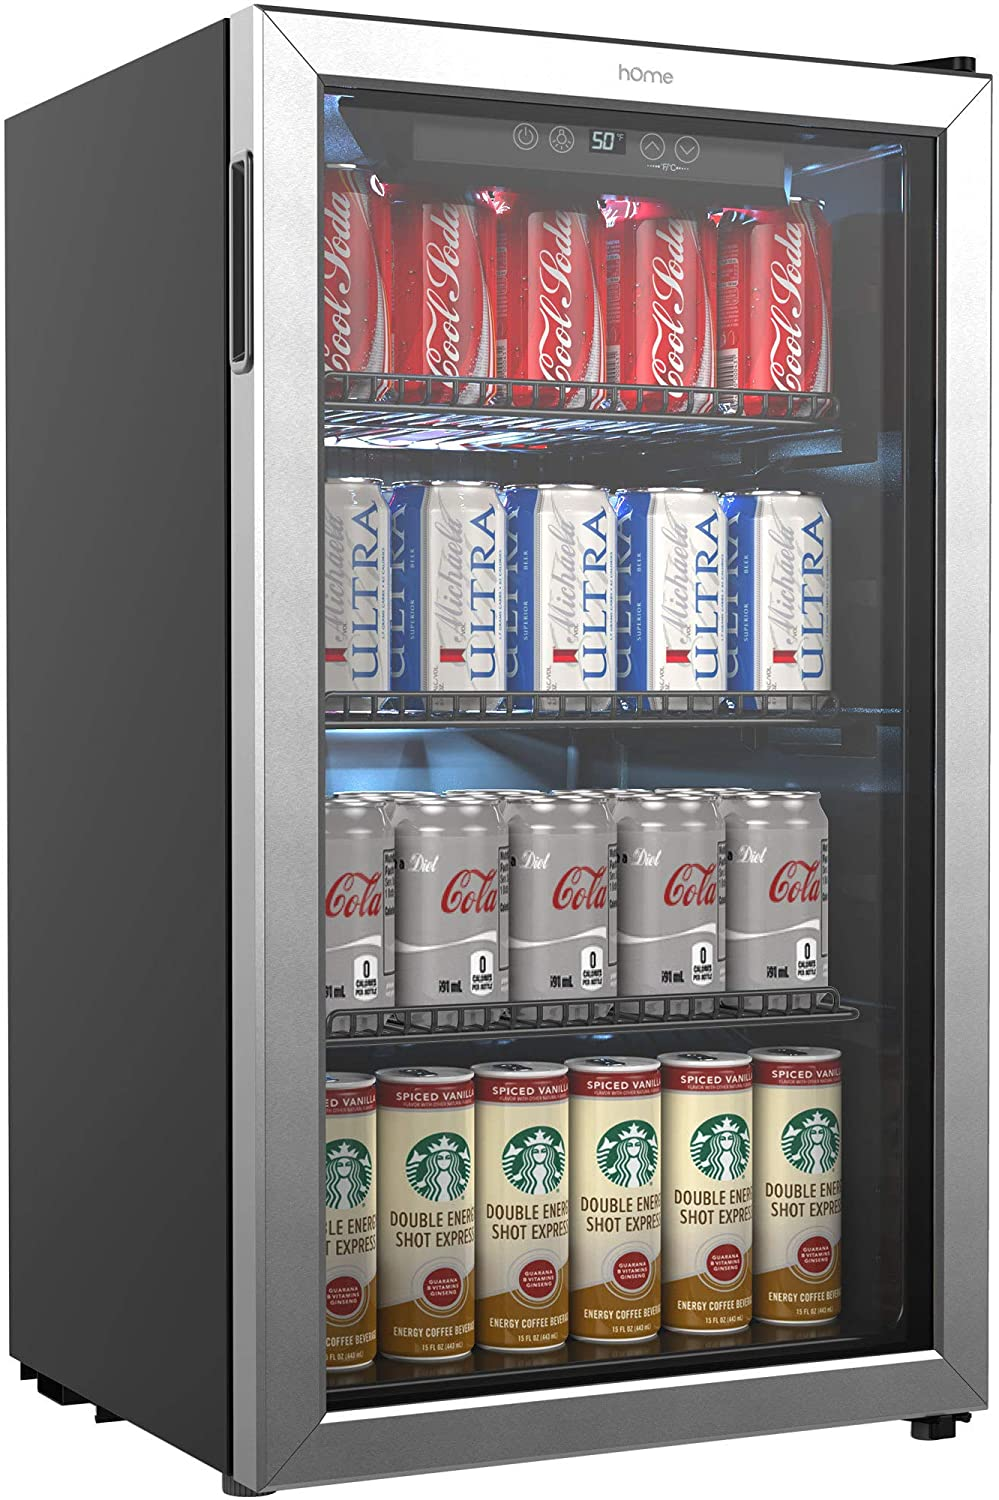 Review of hOmeLabs Beverage Refrigerator and Cooler - 120 Can Mini Fridge